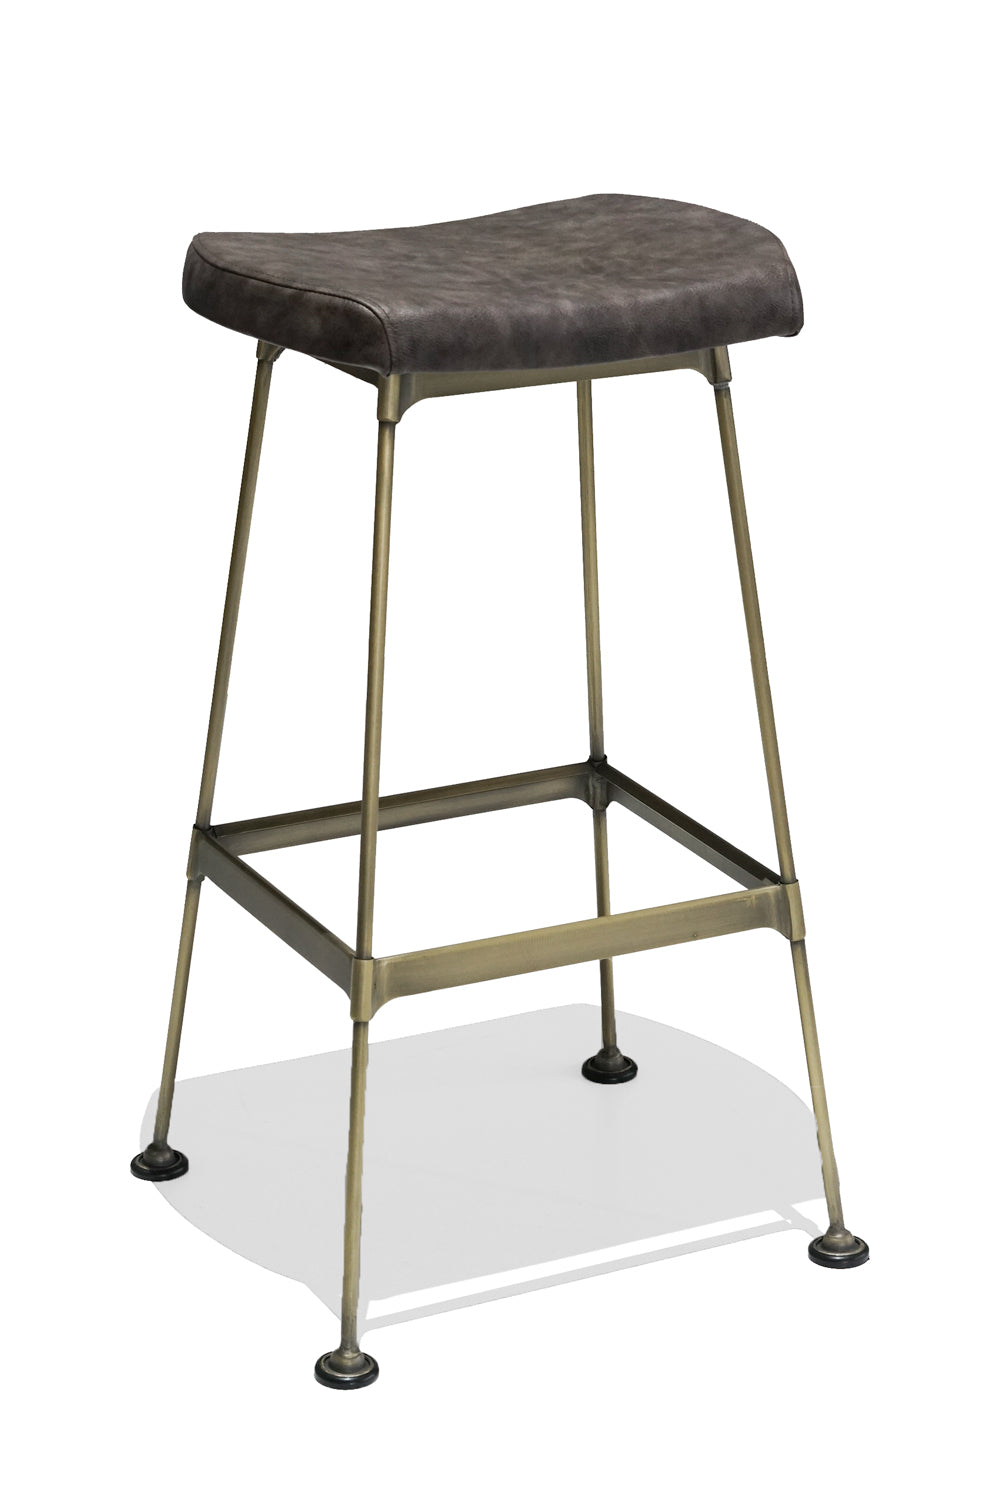 HUBERT bar stool - upholstered